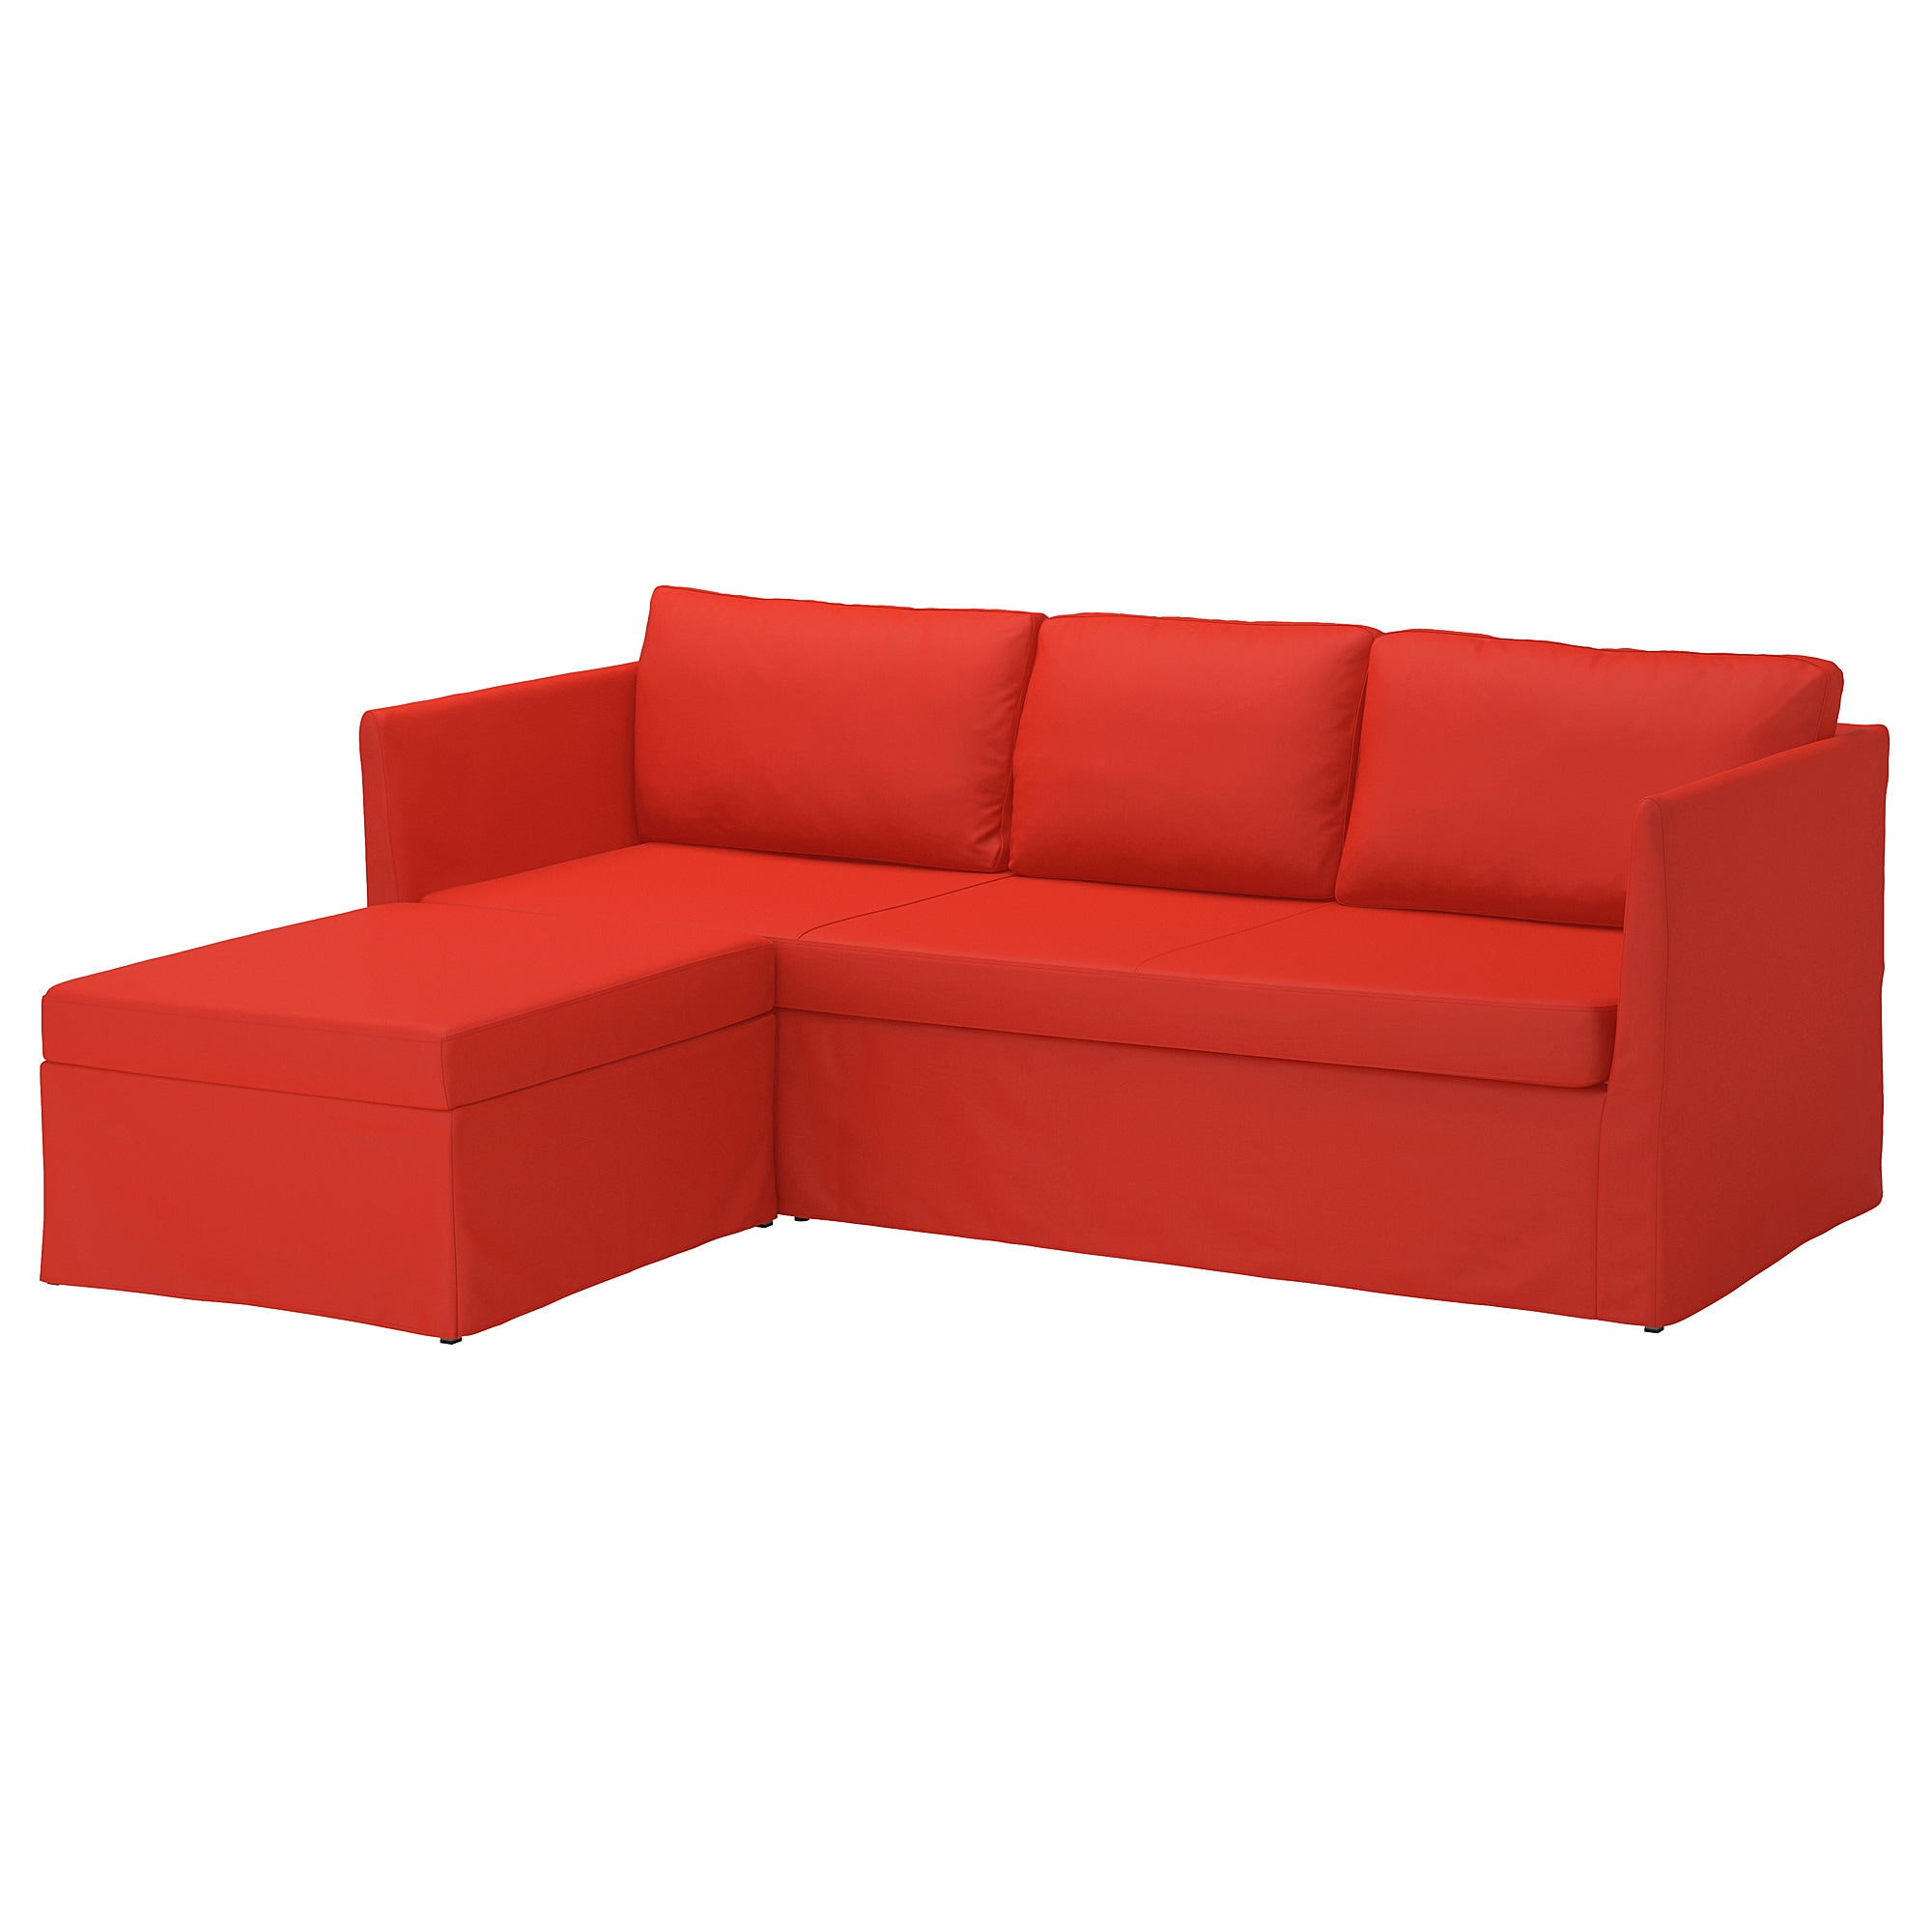 Sleeper sectional, 3-seat BRÅTHULT Vissle red/orange